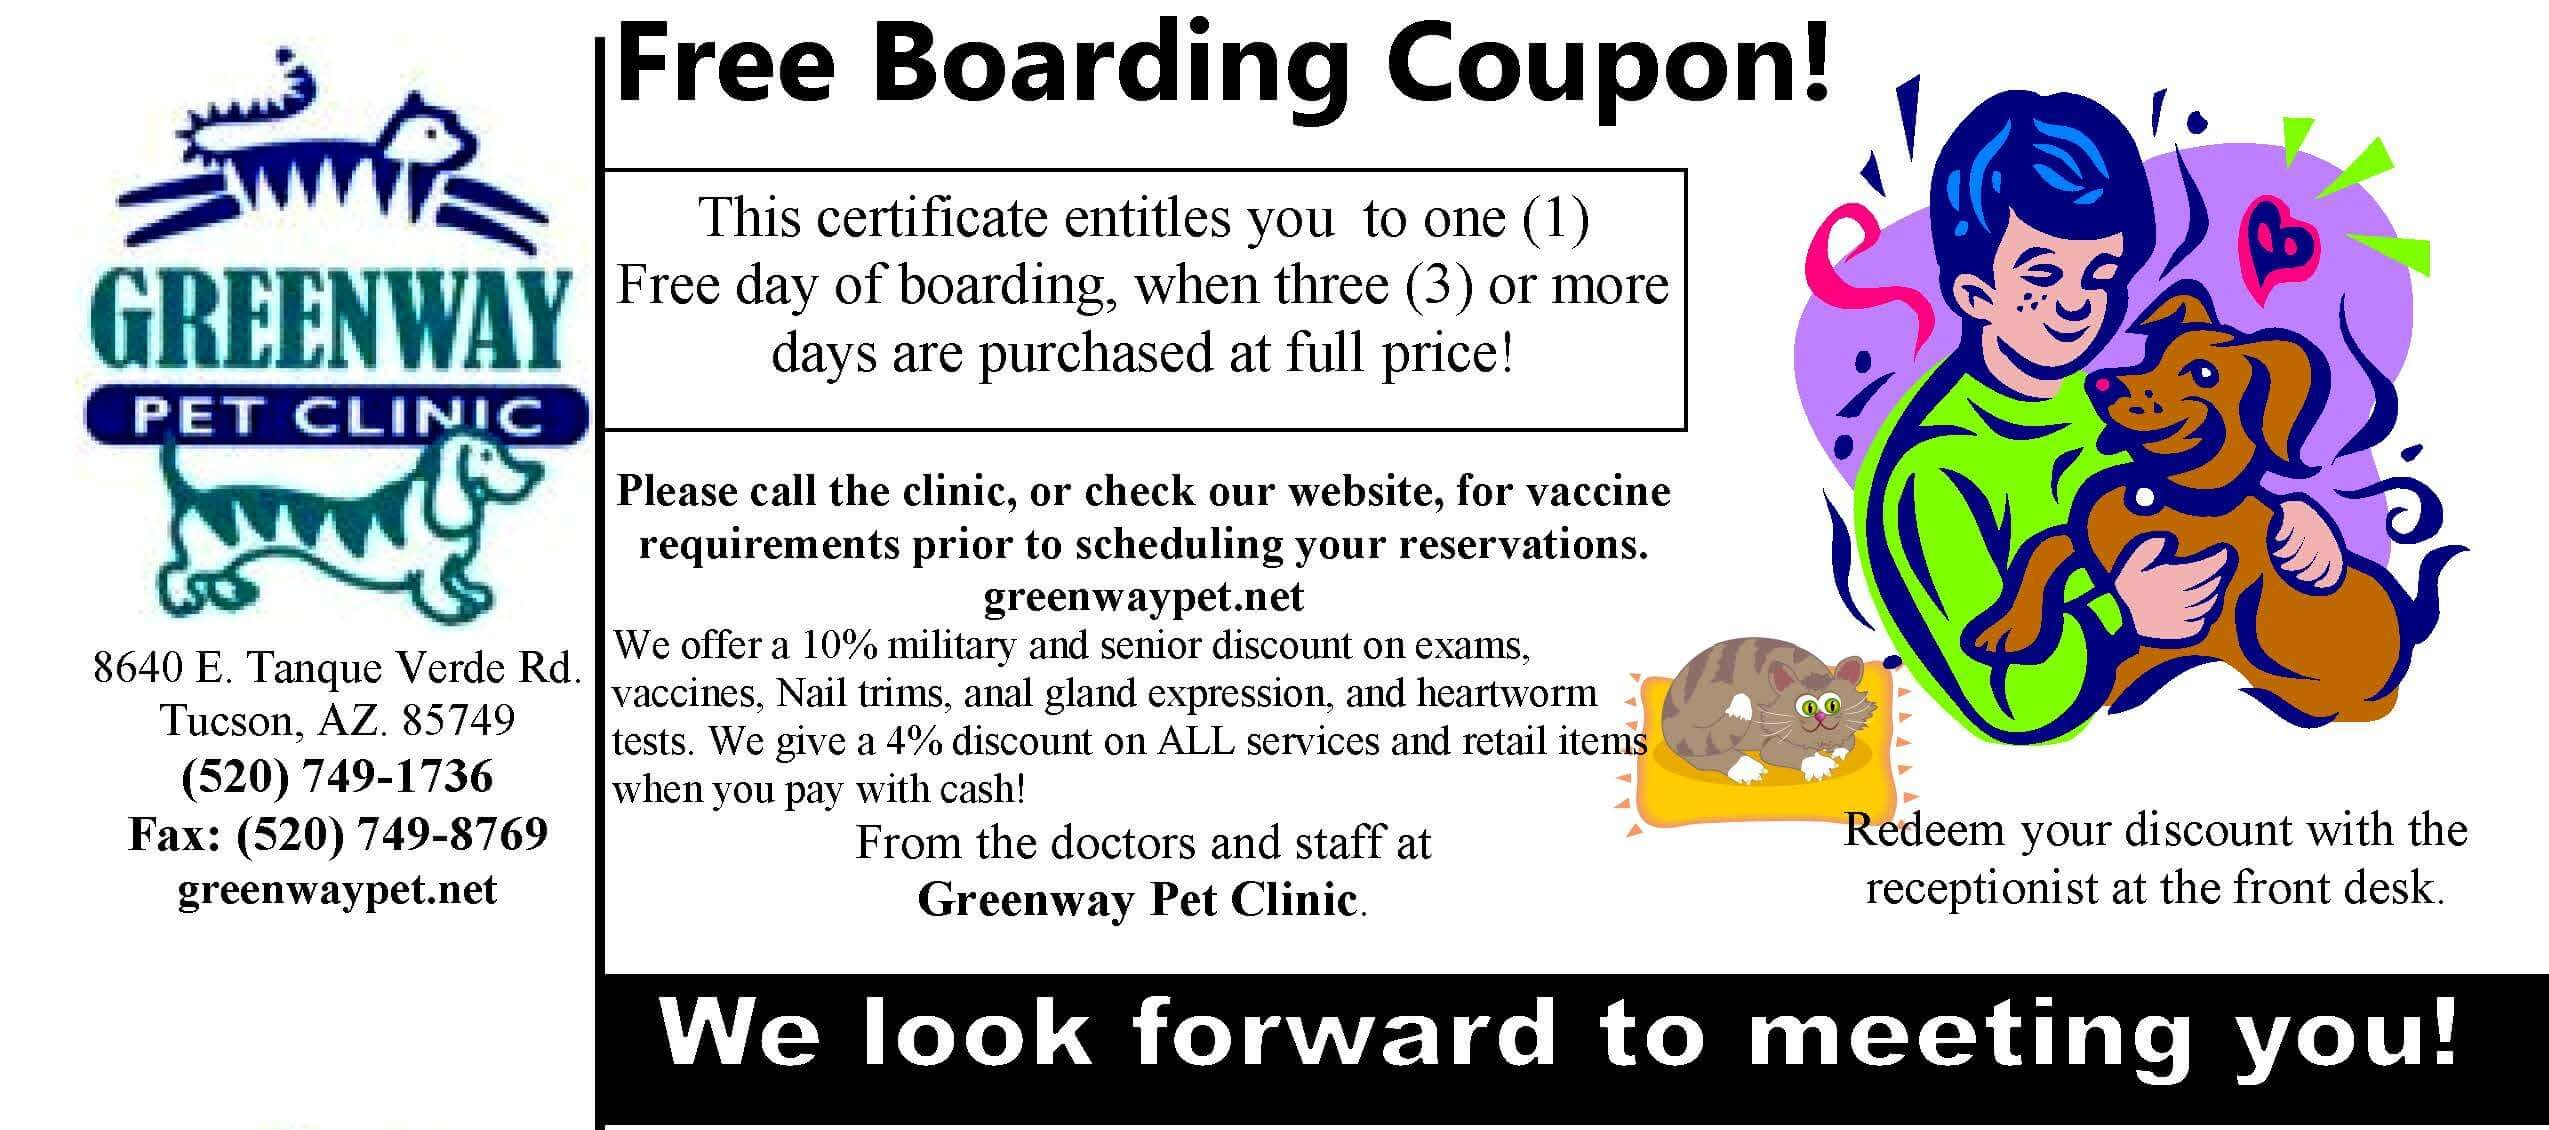 Boarding Coupon